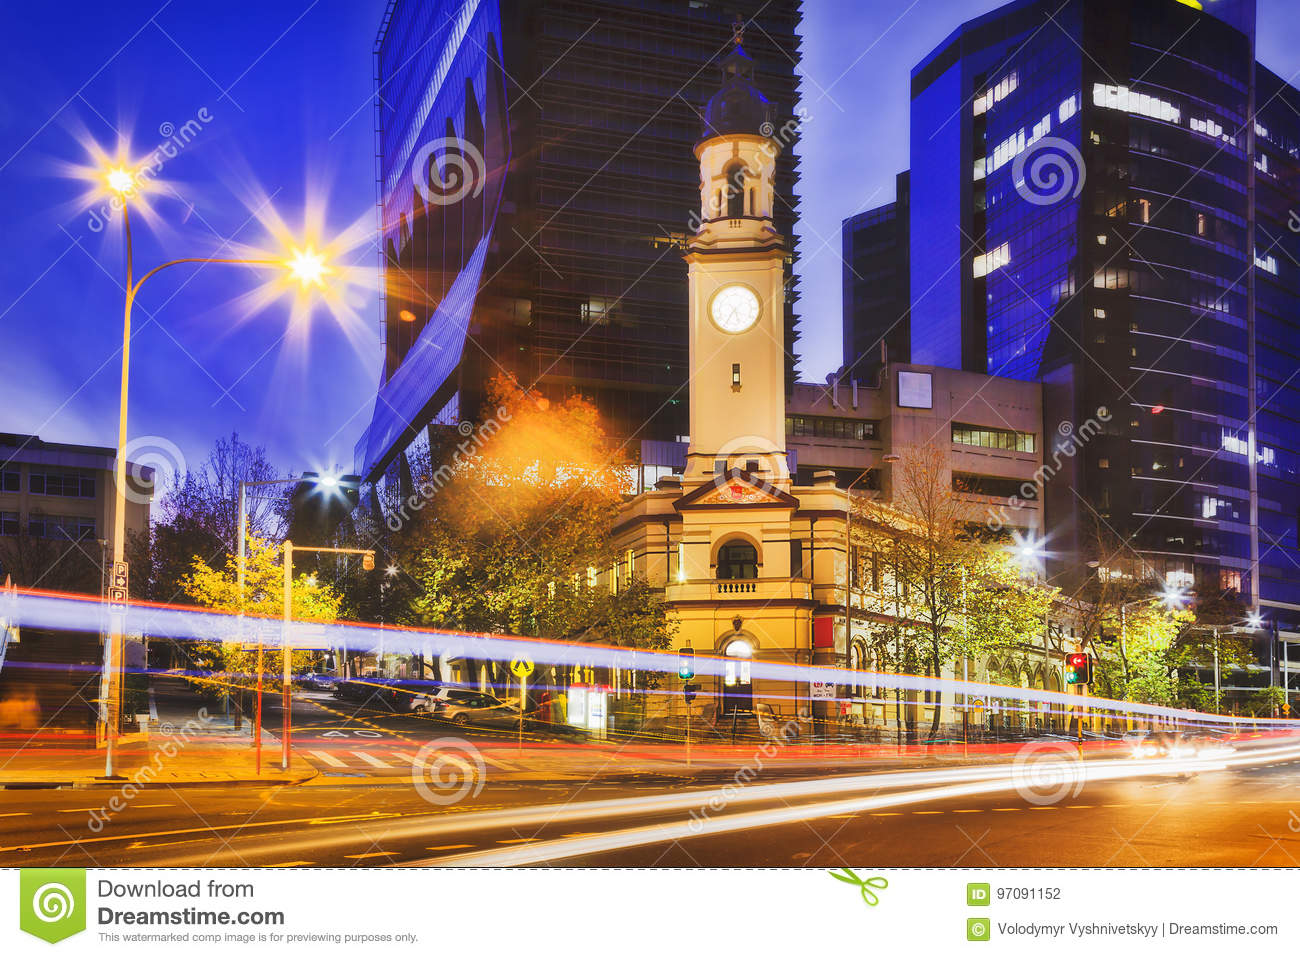 Historic heritage North Sydney post office building with clock tower  against tall modern business high-rises at sunset on car traffic street. adc8b11aeccb9